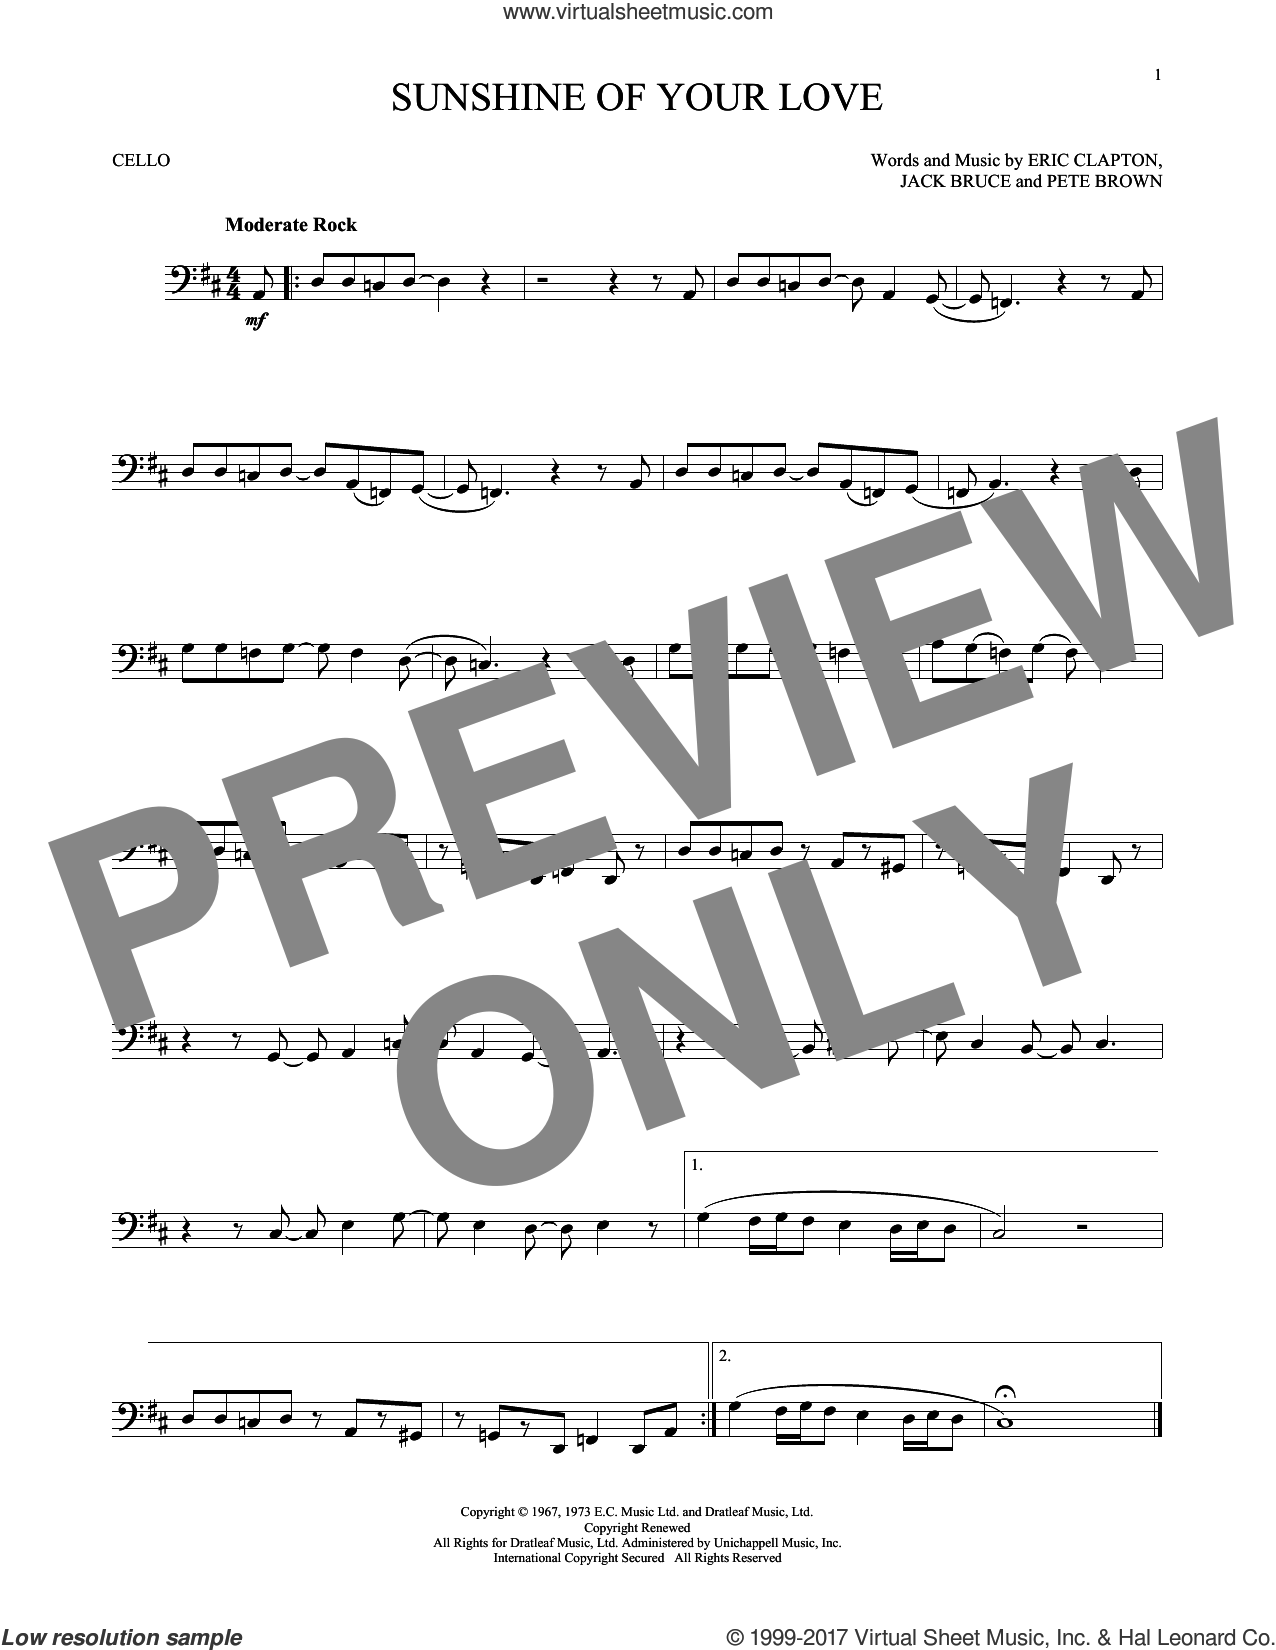 Sunshine Of Your Love sheet music for cello solo by Cream, Eric Clapton, Jack Bruce and Pete Brown, intermediate skill level